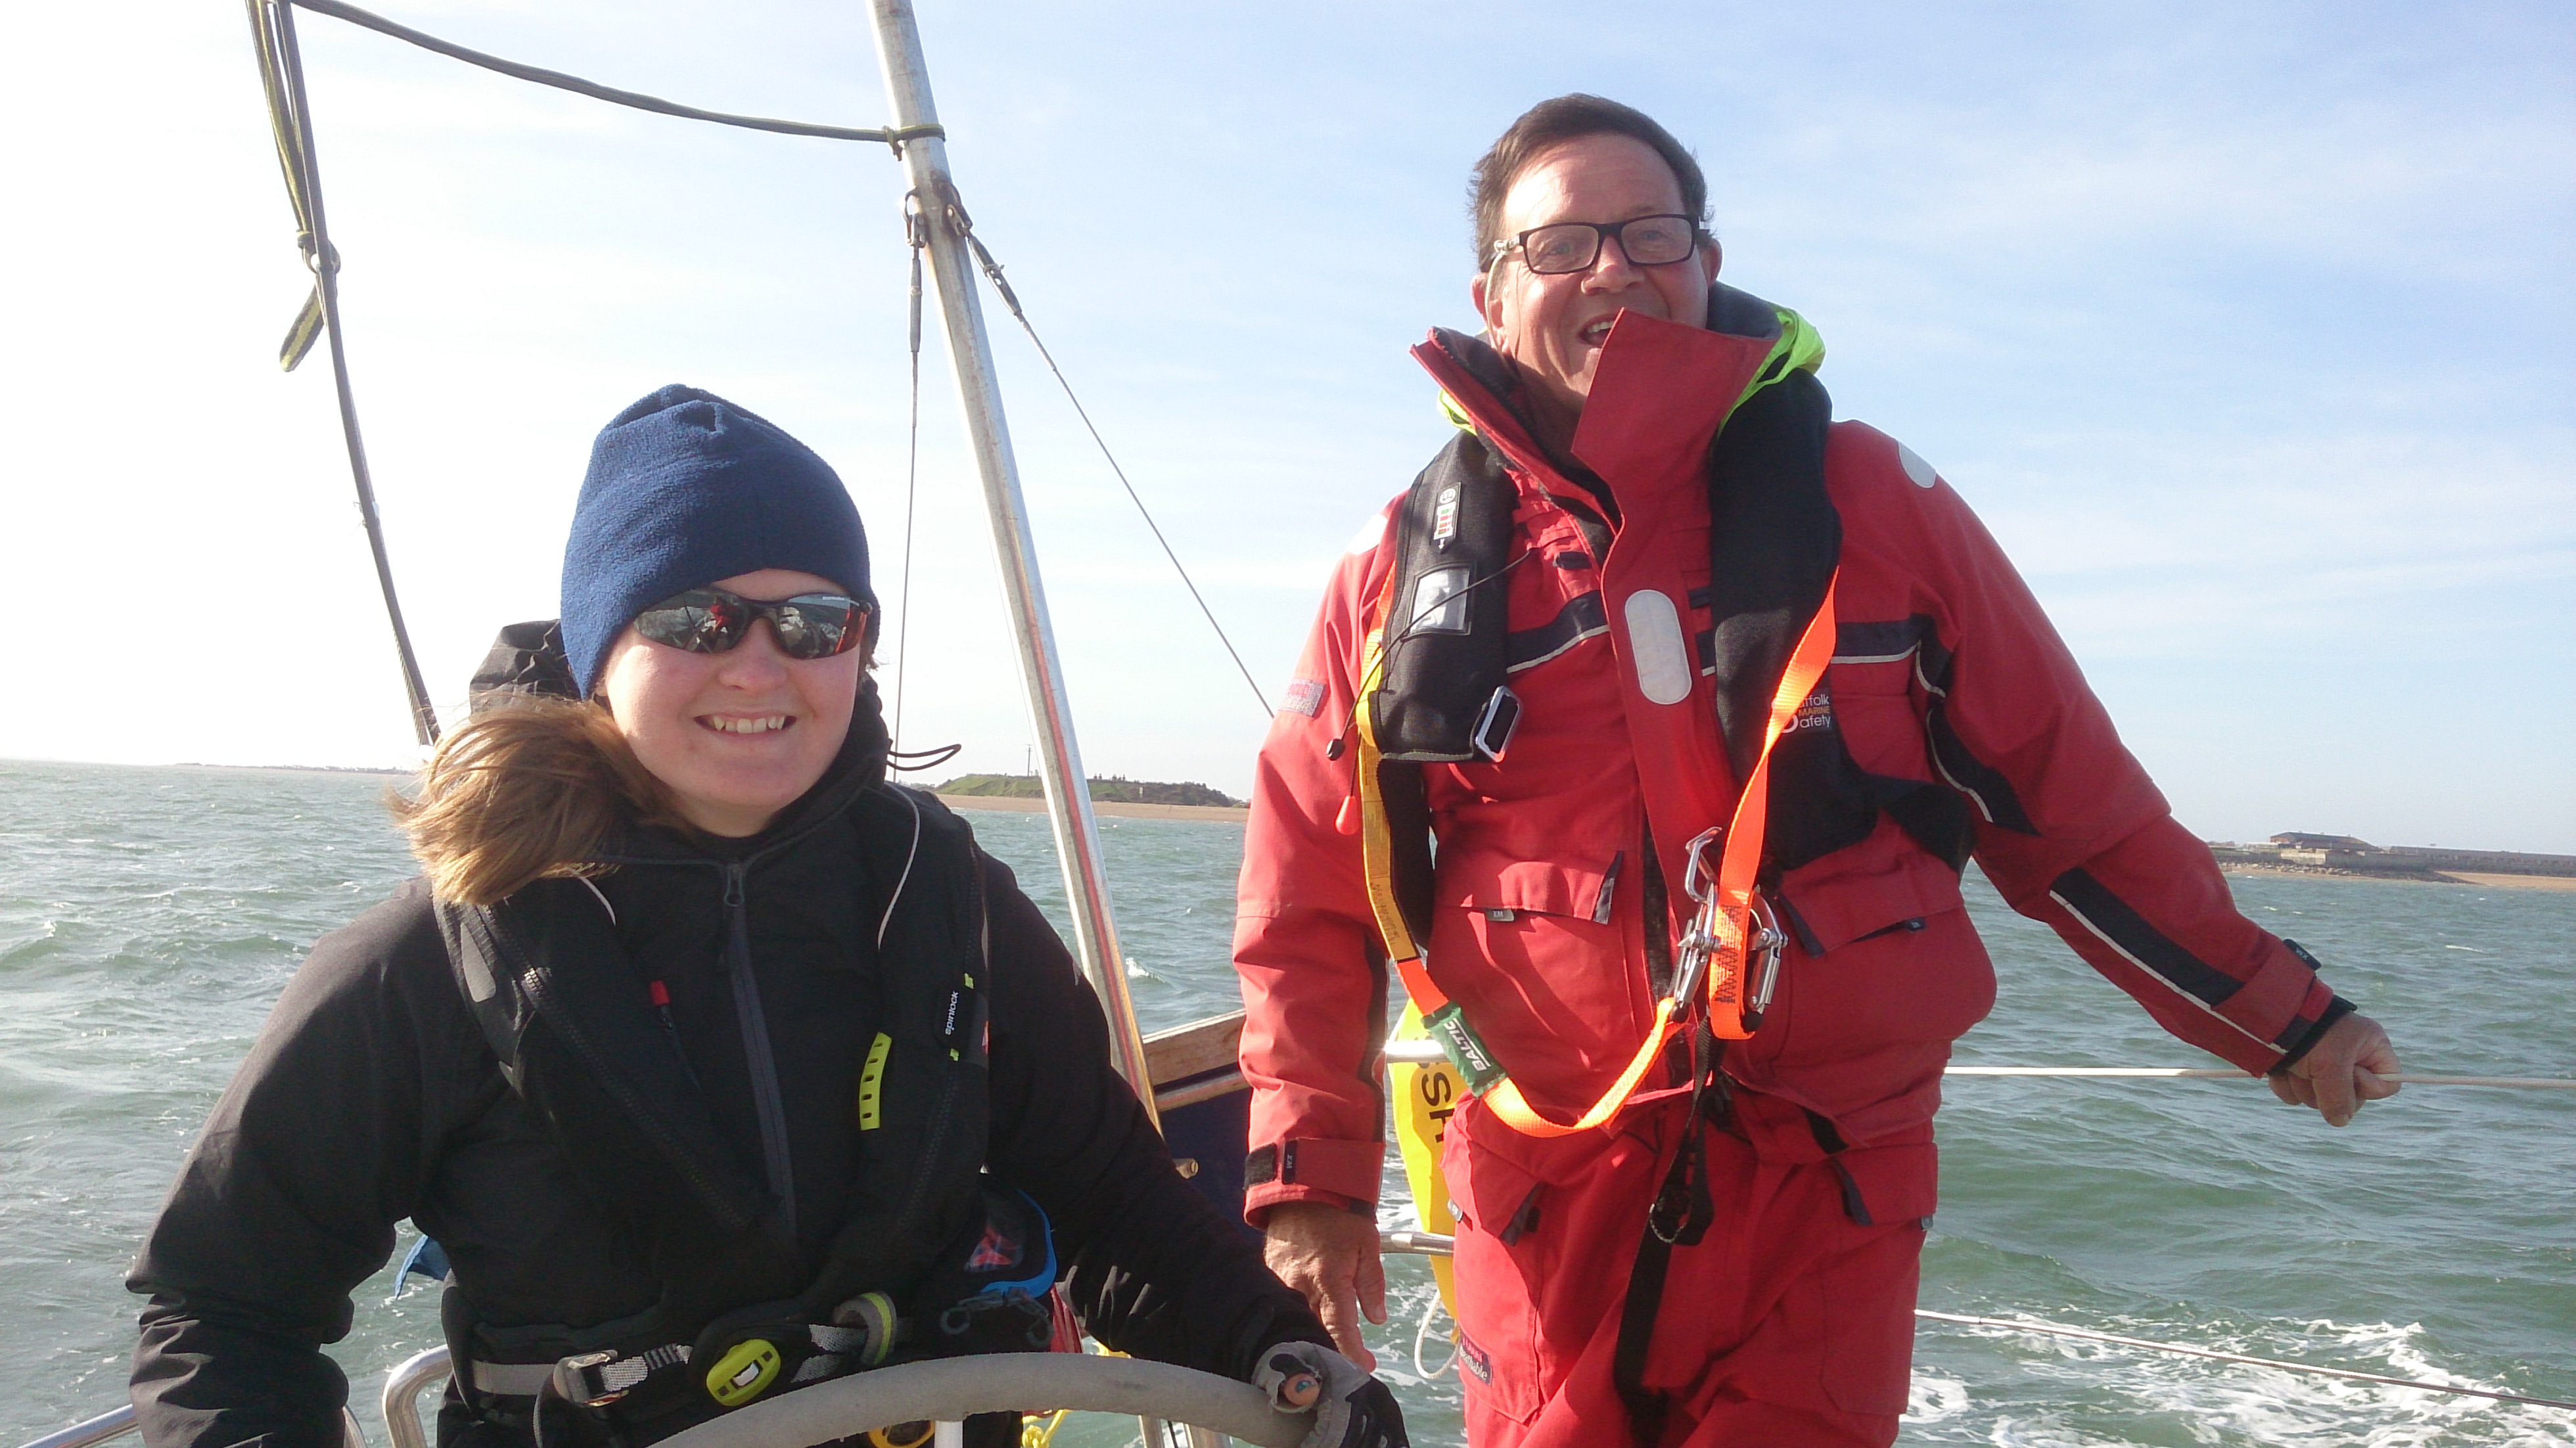 Jalapeno in action – Learn to sail Day Skipper